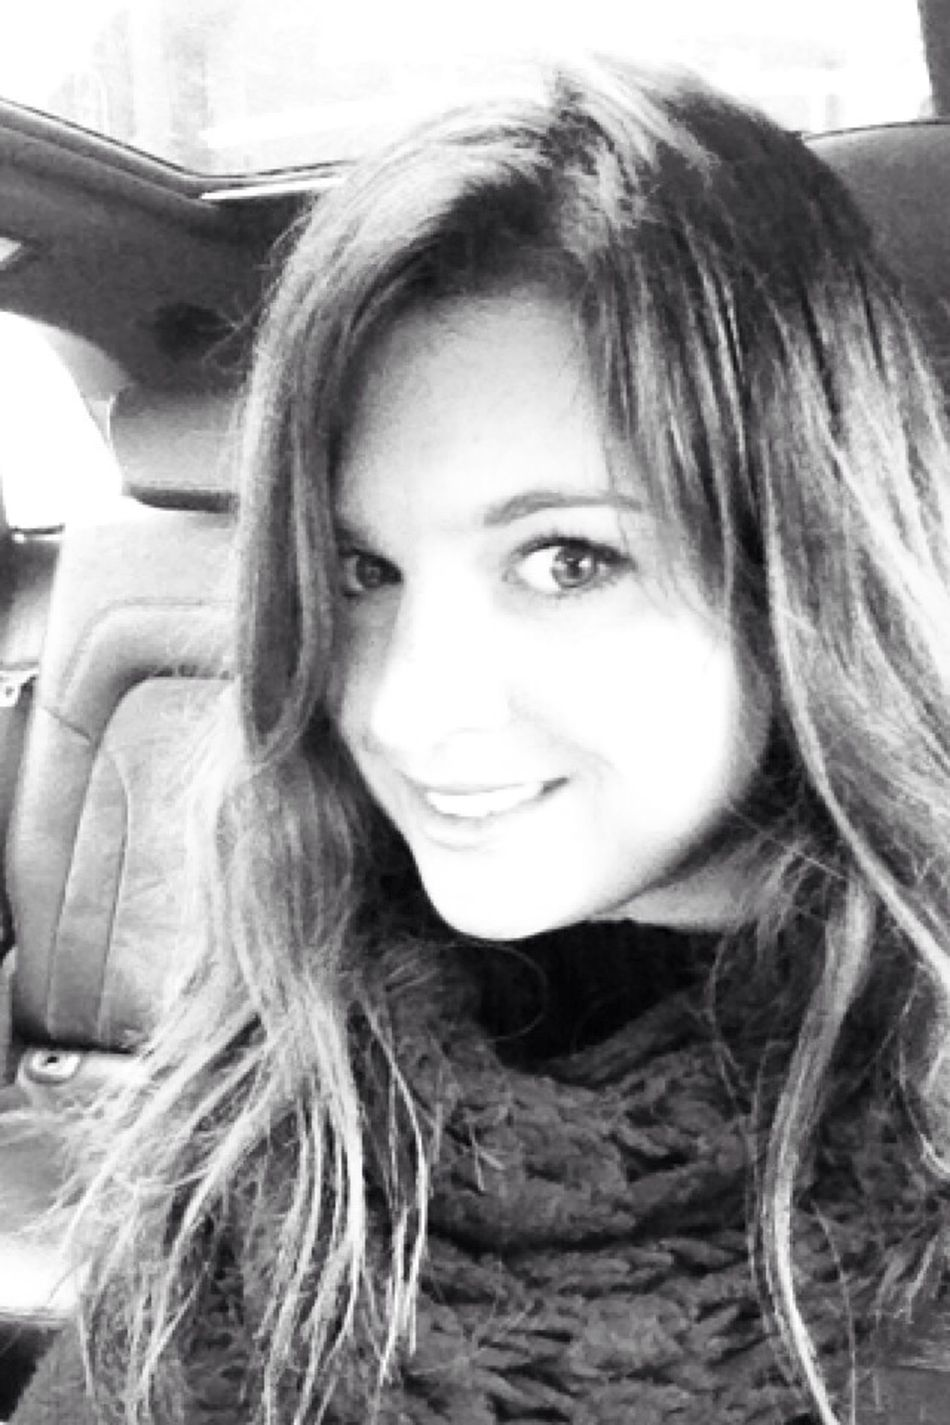 Road Taking Photos Pretty Smile drivingqueen Audi touring to Amterdam, throwback one..